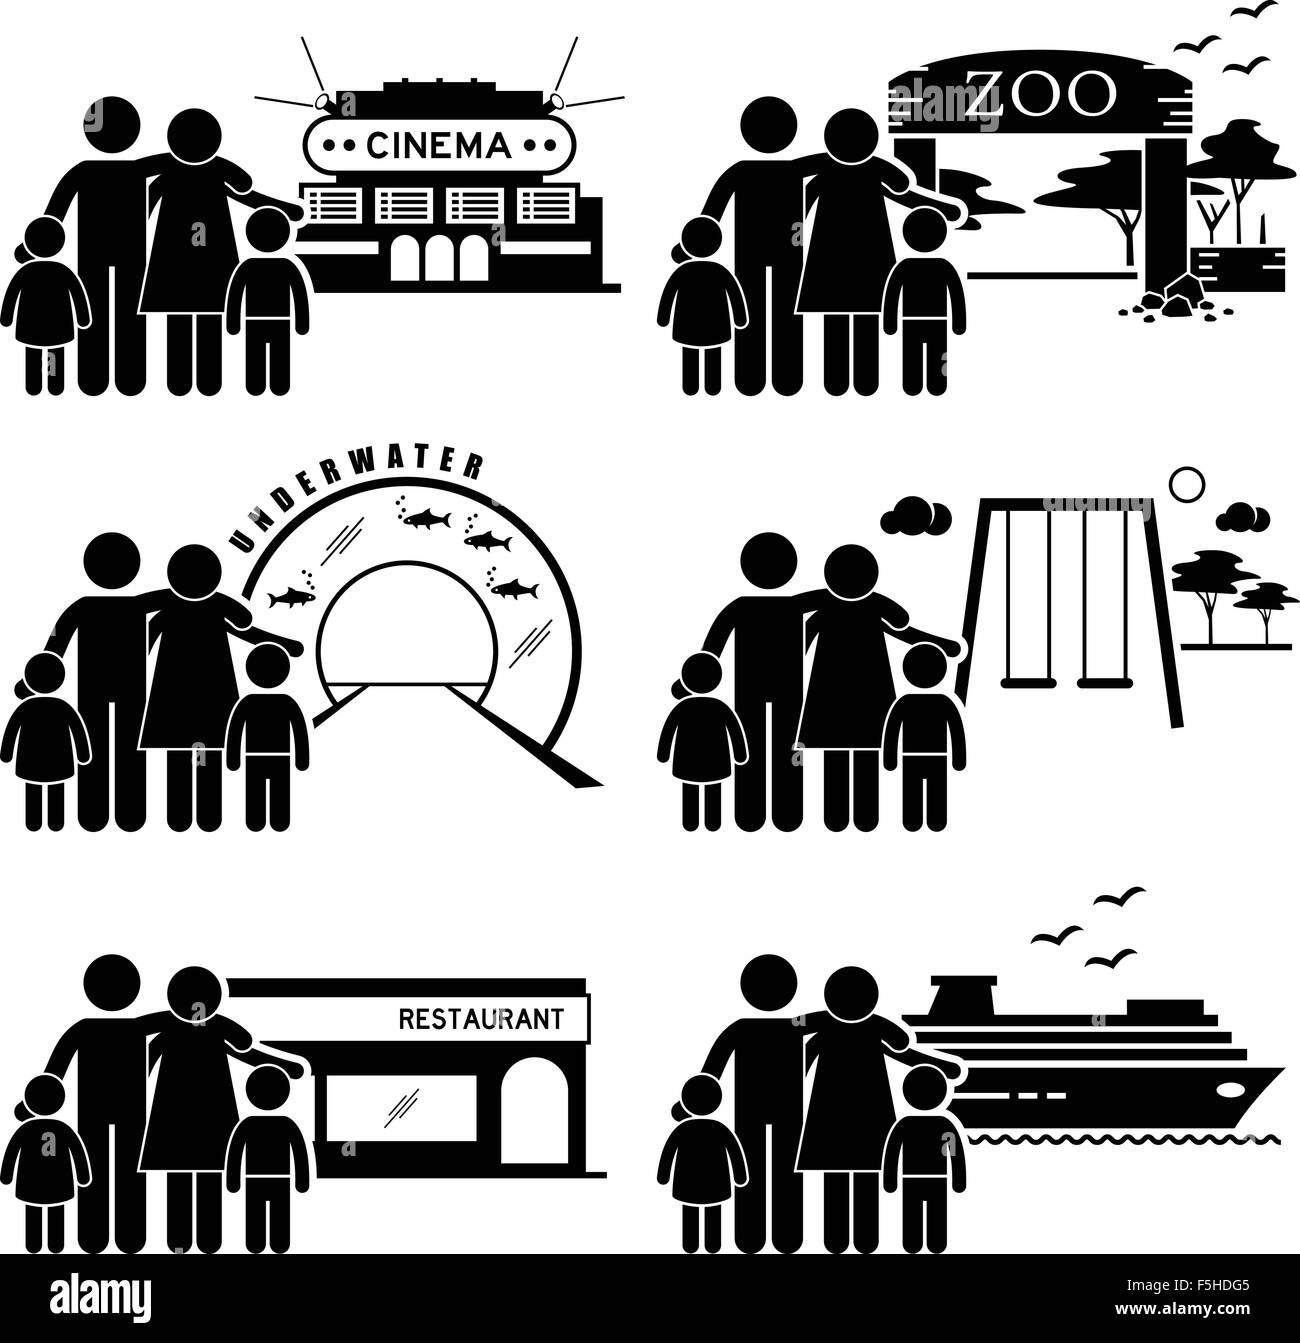 Family Outing Activities - Cinema, Zoo, Underwater Theme Park, Playground, Restaurant Dining, Holiday Cruise Ship - Stock Vector